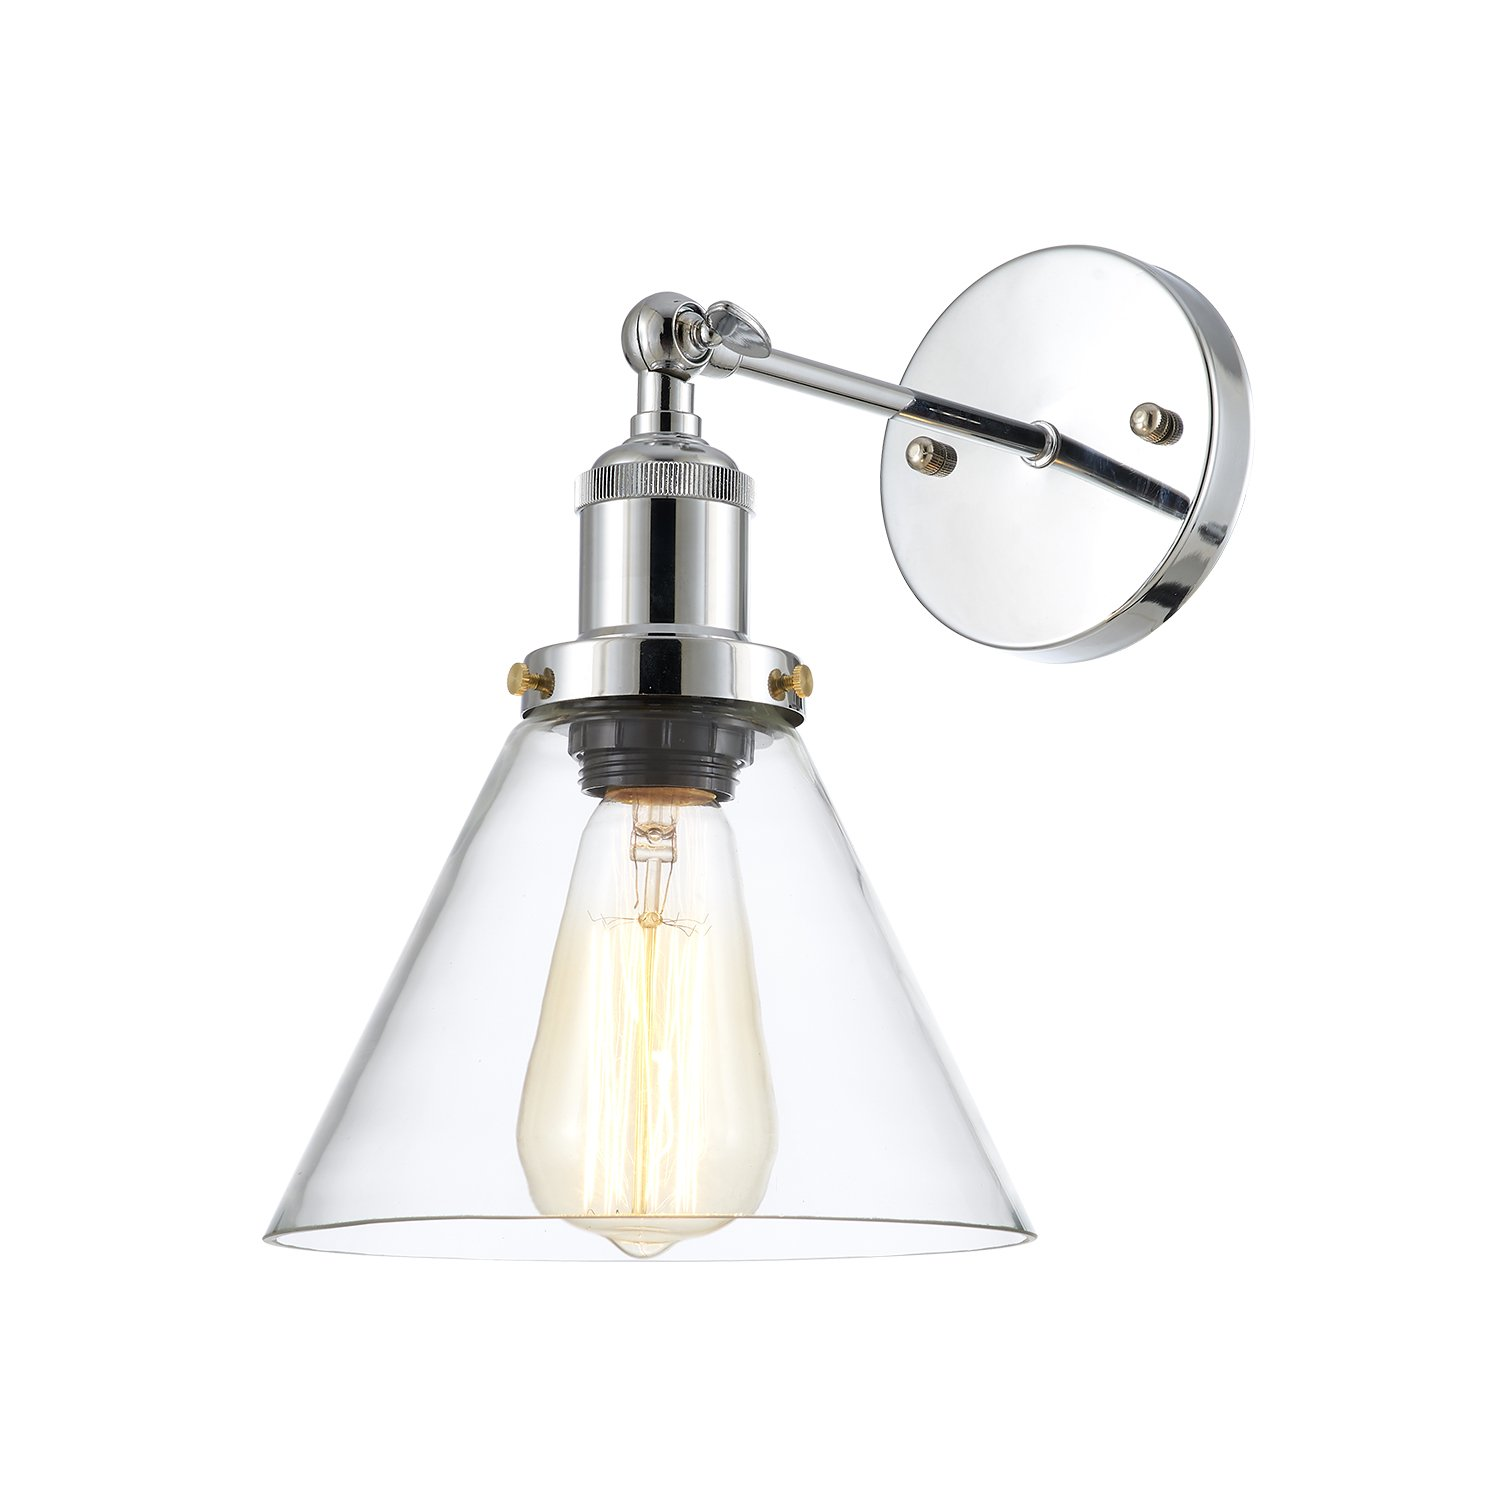 Ohr lighting wall sconce lamp vintage edison industrial light fixture with clear glass shade nickel chrome 7 5w x 11 5h